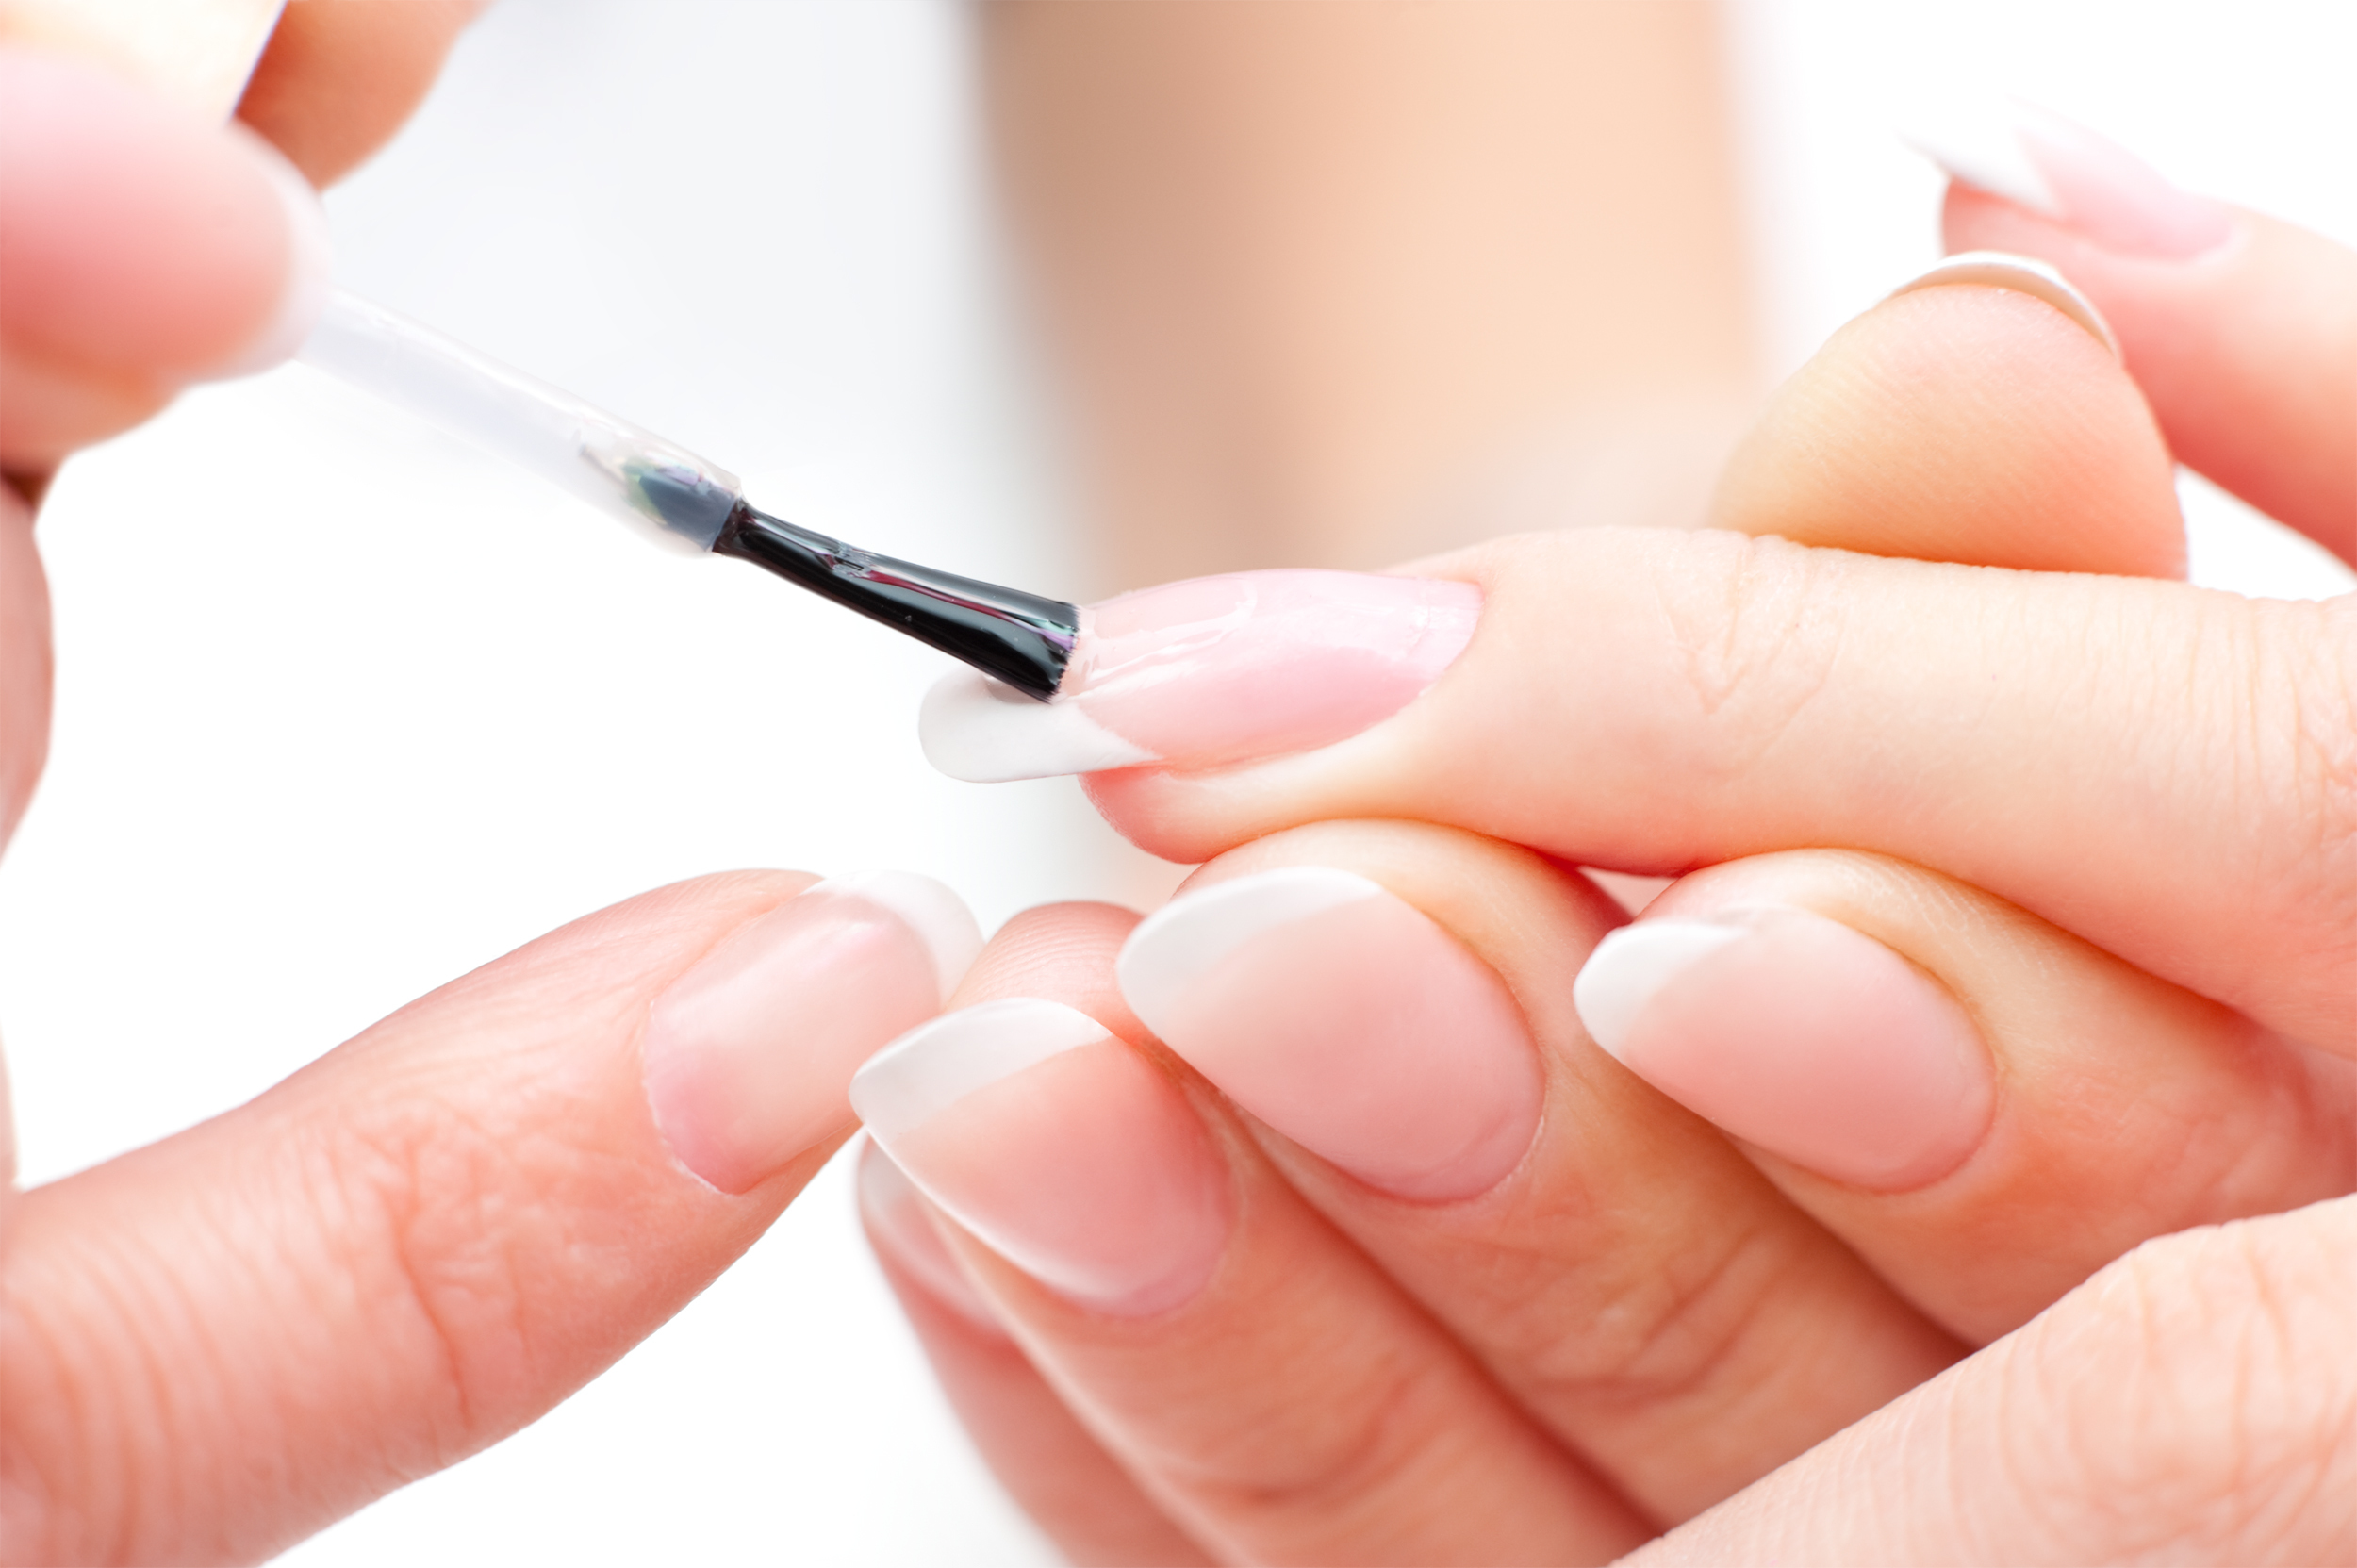 GTi Manicure £160 - The manicure offers the therapist or technician a whole range of options to suit nearly every client. This course will teach you everything you need to know about offering a professional manicure, and includes a practical training session and assessment.